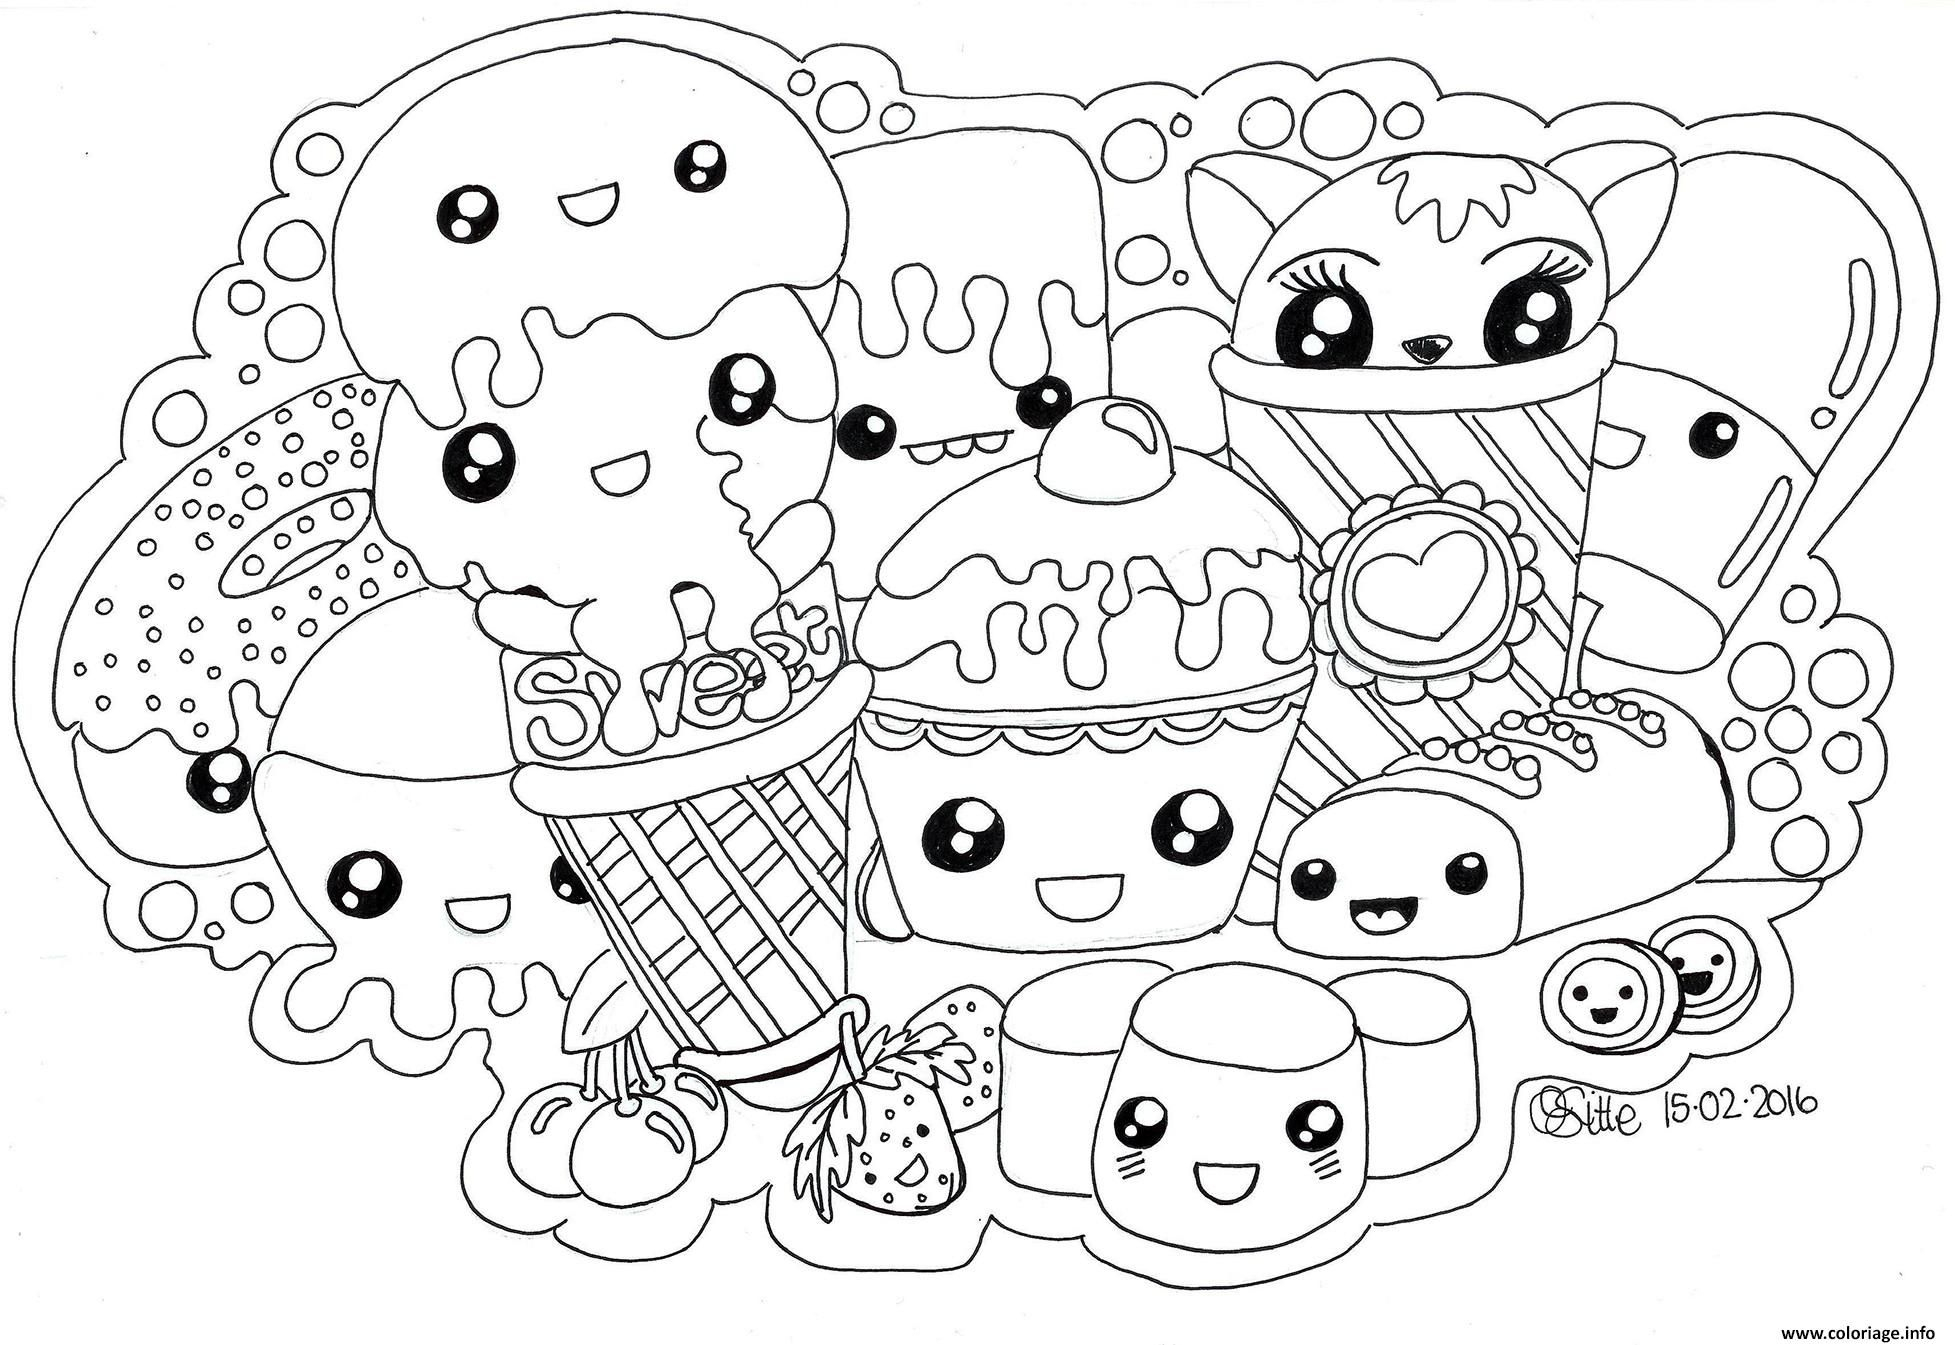 Coloriage Kawaii Sweets Colour Manga Cute Dessin À Imprimer pour Coloriage Manga Kawaii